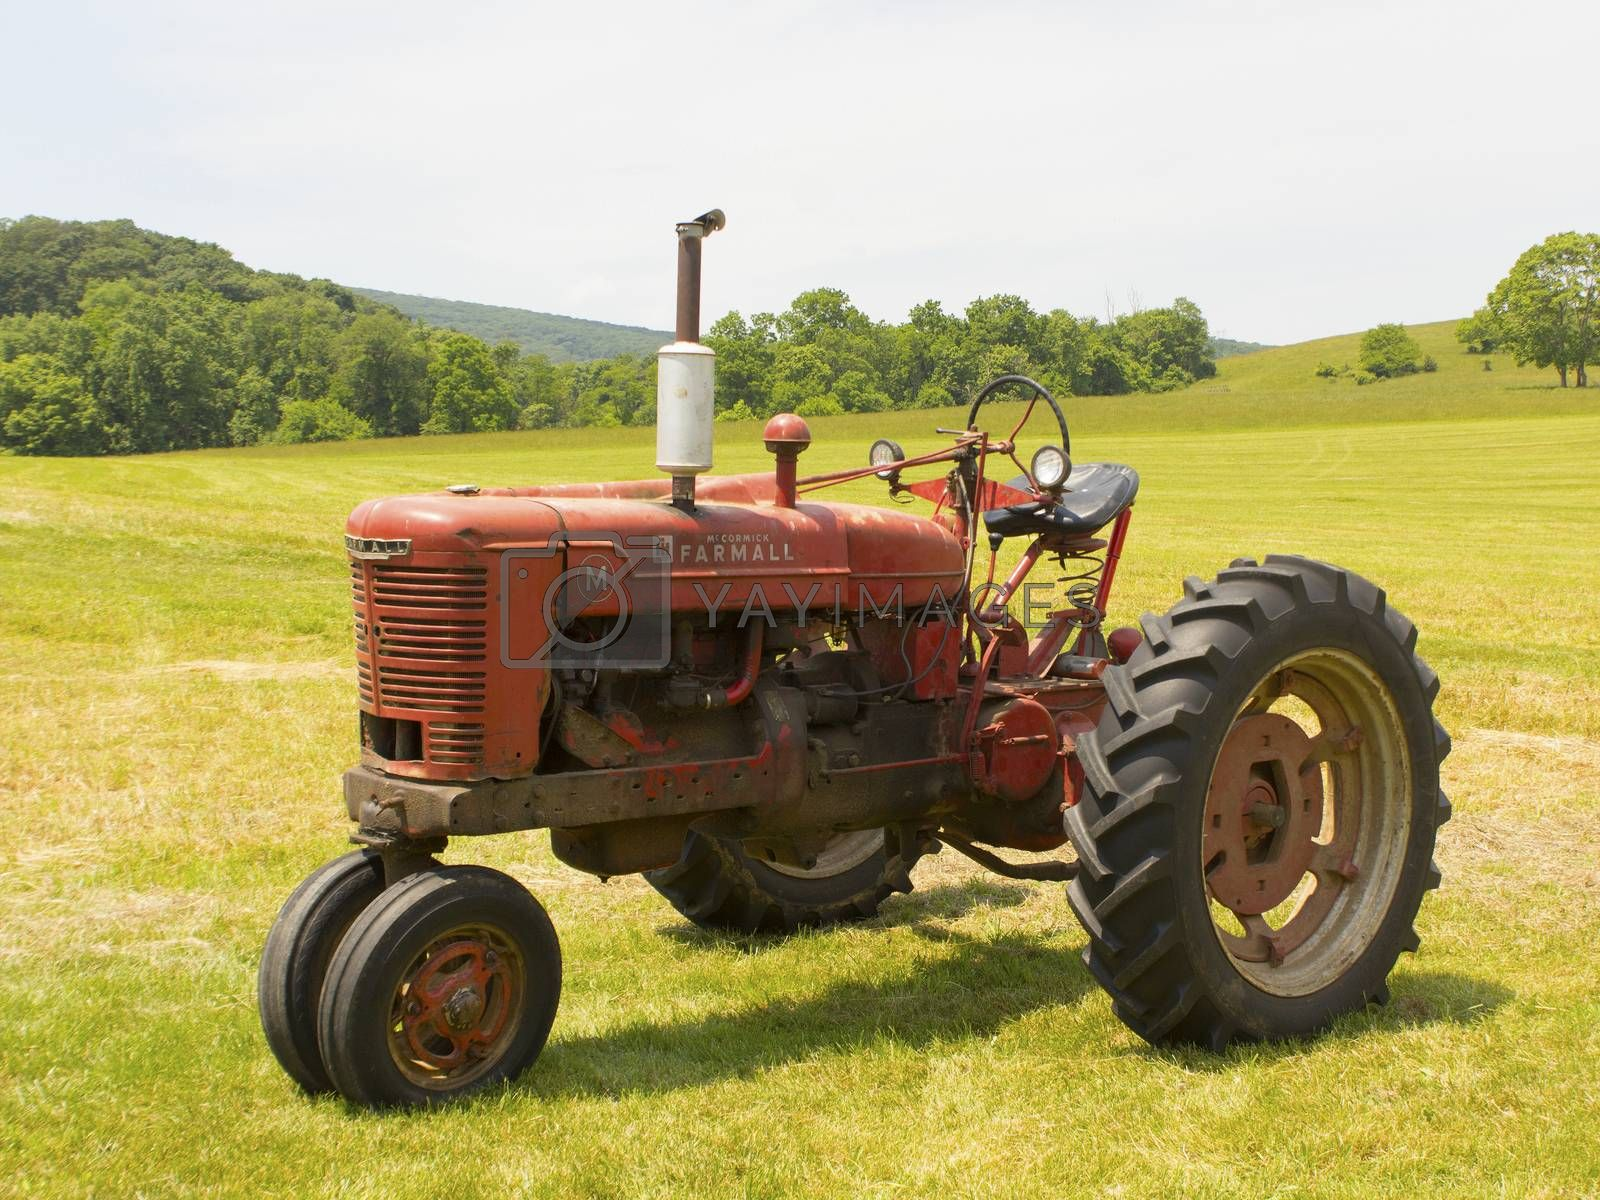 Old McCormick Farmall tractor sitting in a field